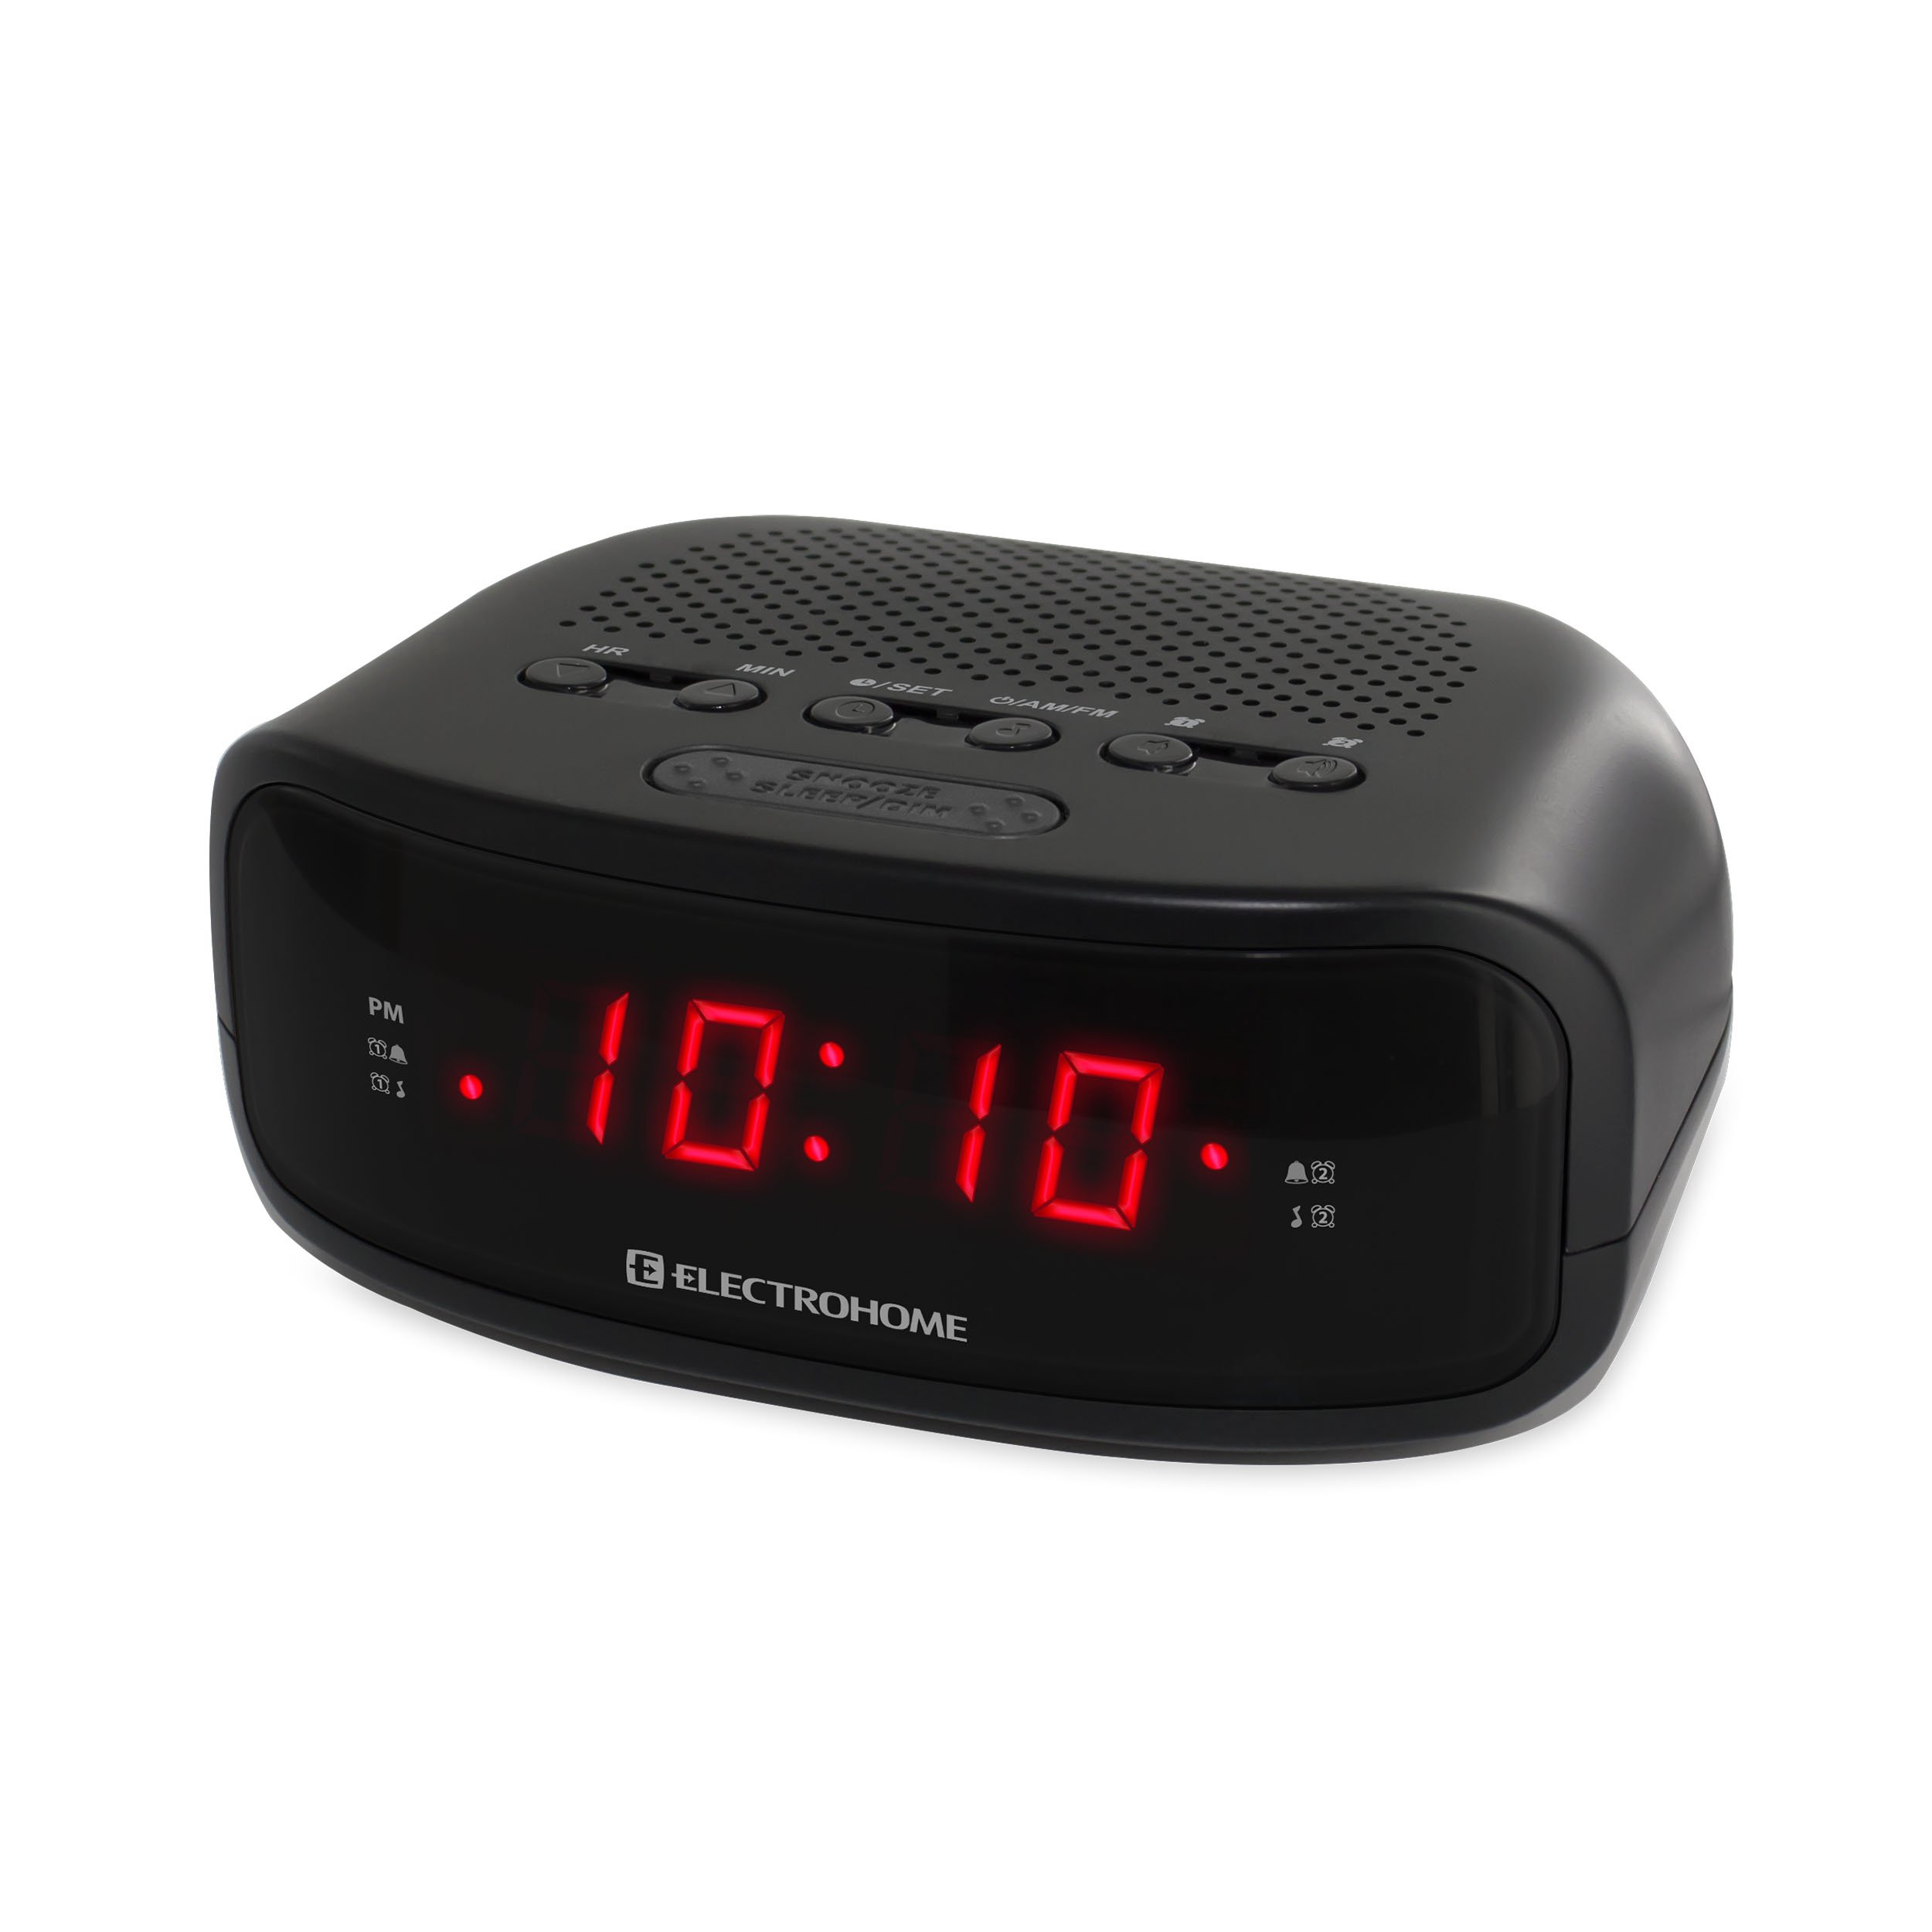 Electrohome Digital AM/FM Clock Radio with Battery Backup, Dual Alarm, Sleep & Snooze Functions, Display Dimming Option (EAAC200)